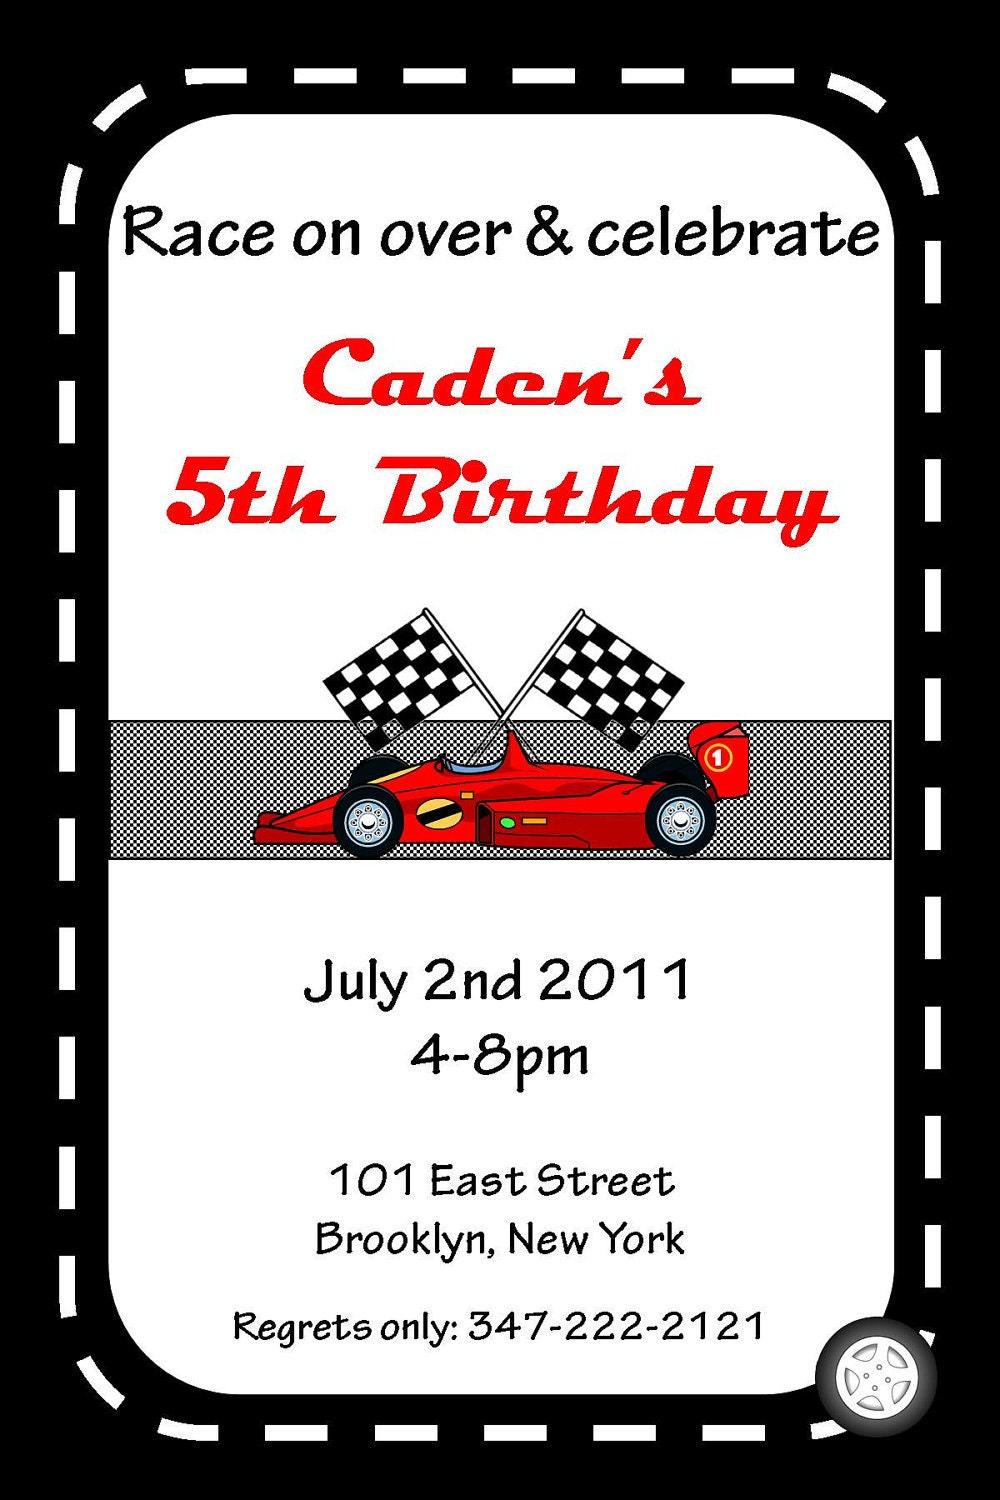 Race Car Theme Birthday Card